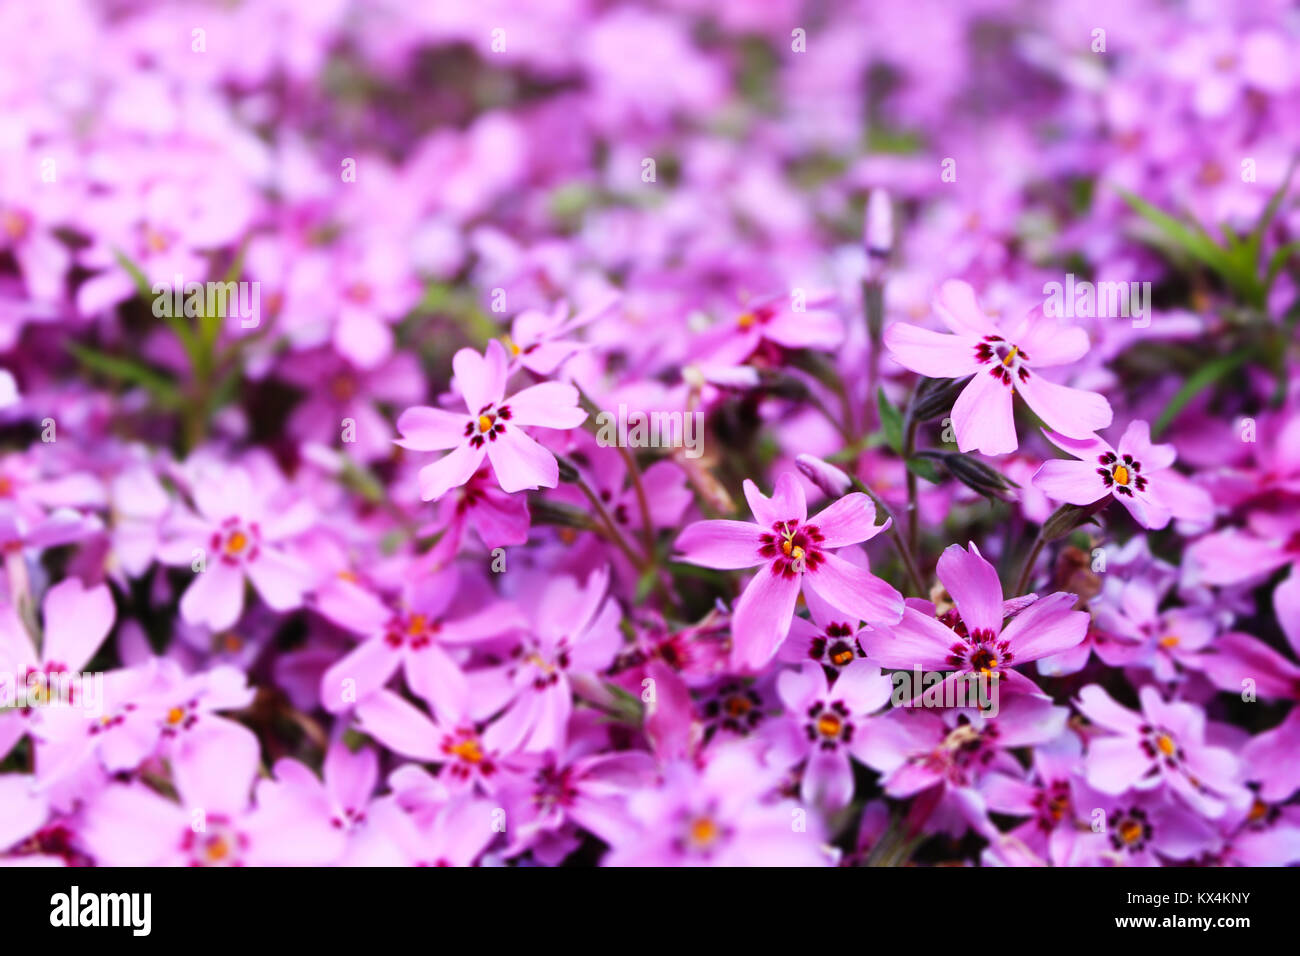 blurred background violet small flowers - Stock Image